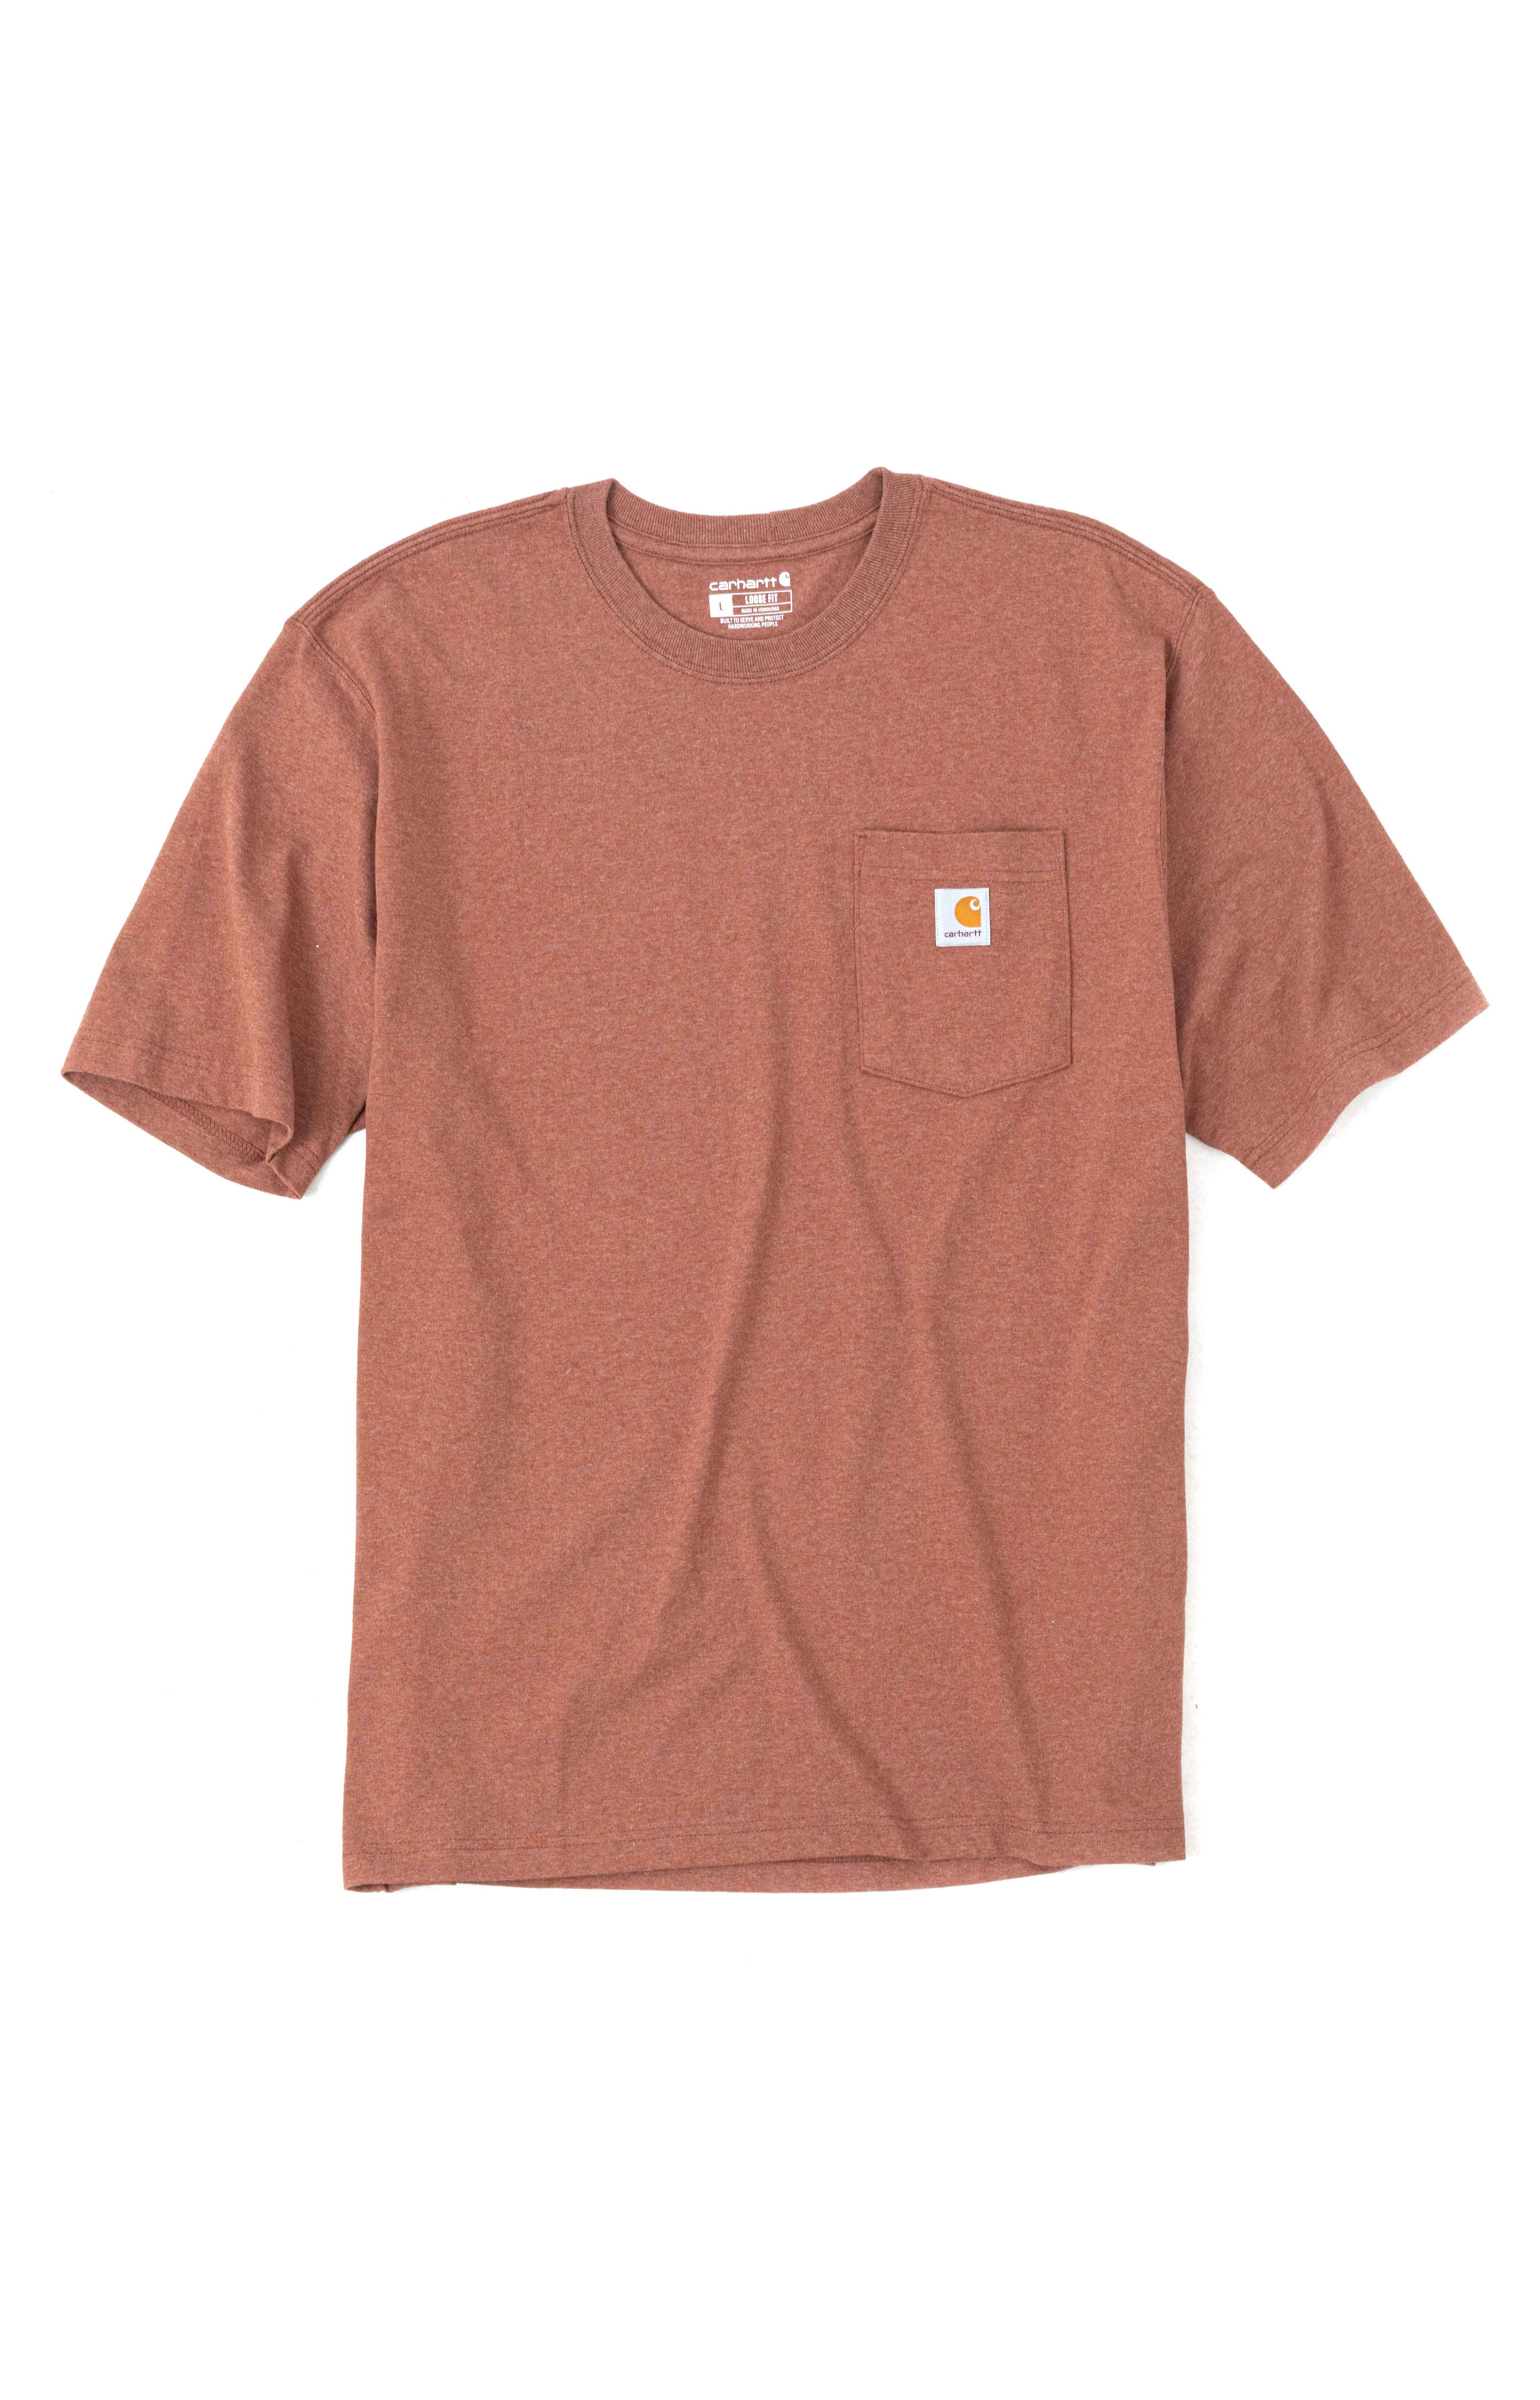 (104797) Loose Fit S/S Pocket Woods Graphic T-Shirt - Auburn Heather  2